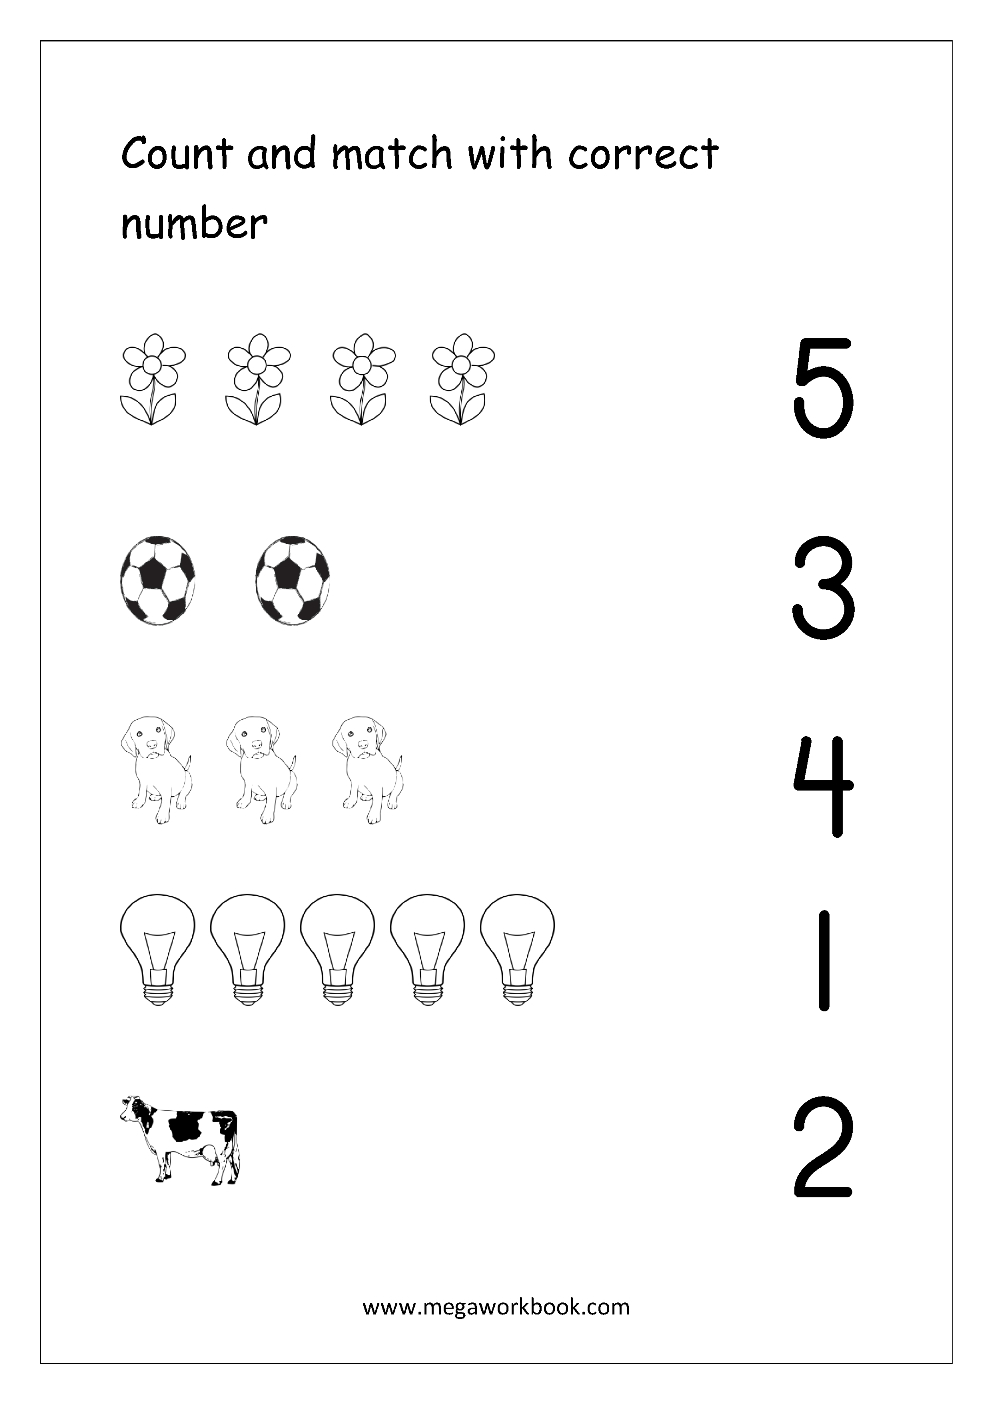 Free Printable Number Matching Worksheets For Kindergarten And - Free Printable Number Worksheets For Kindergarten